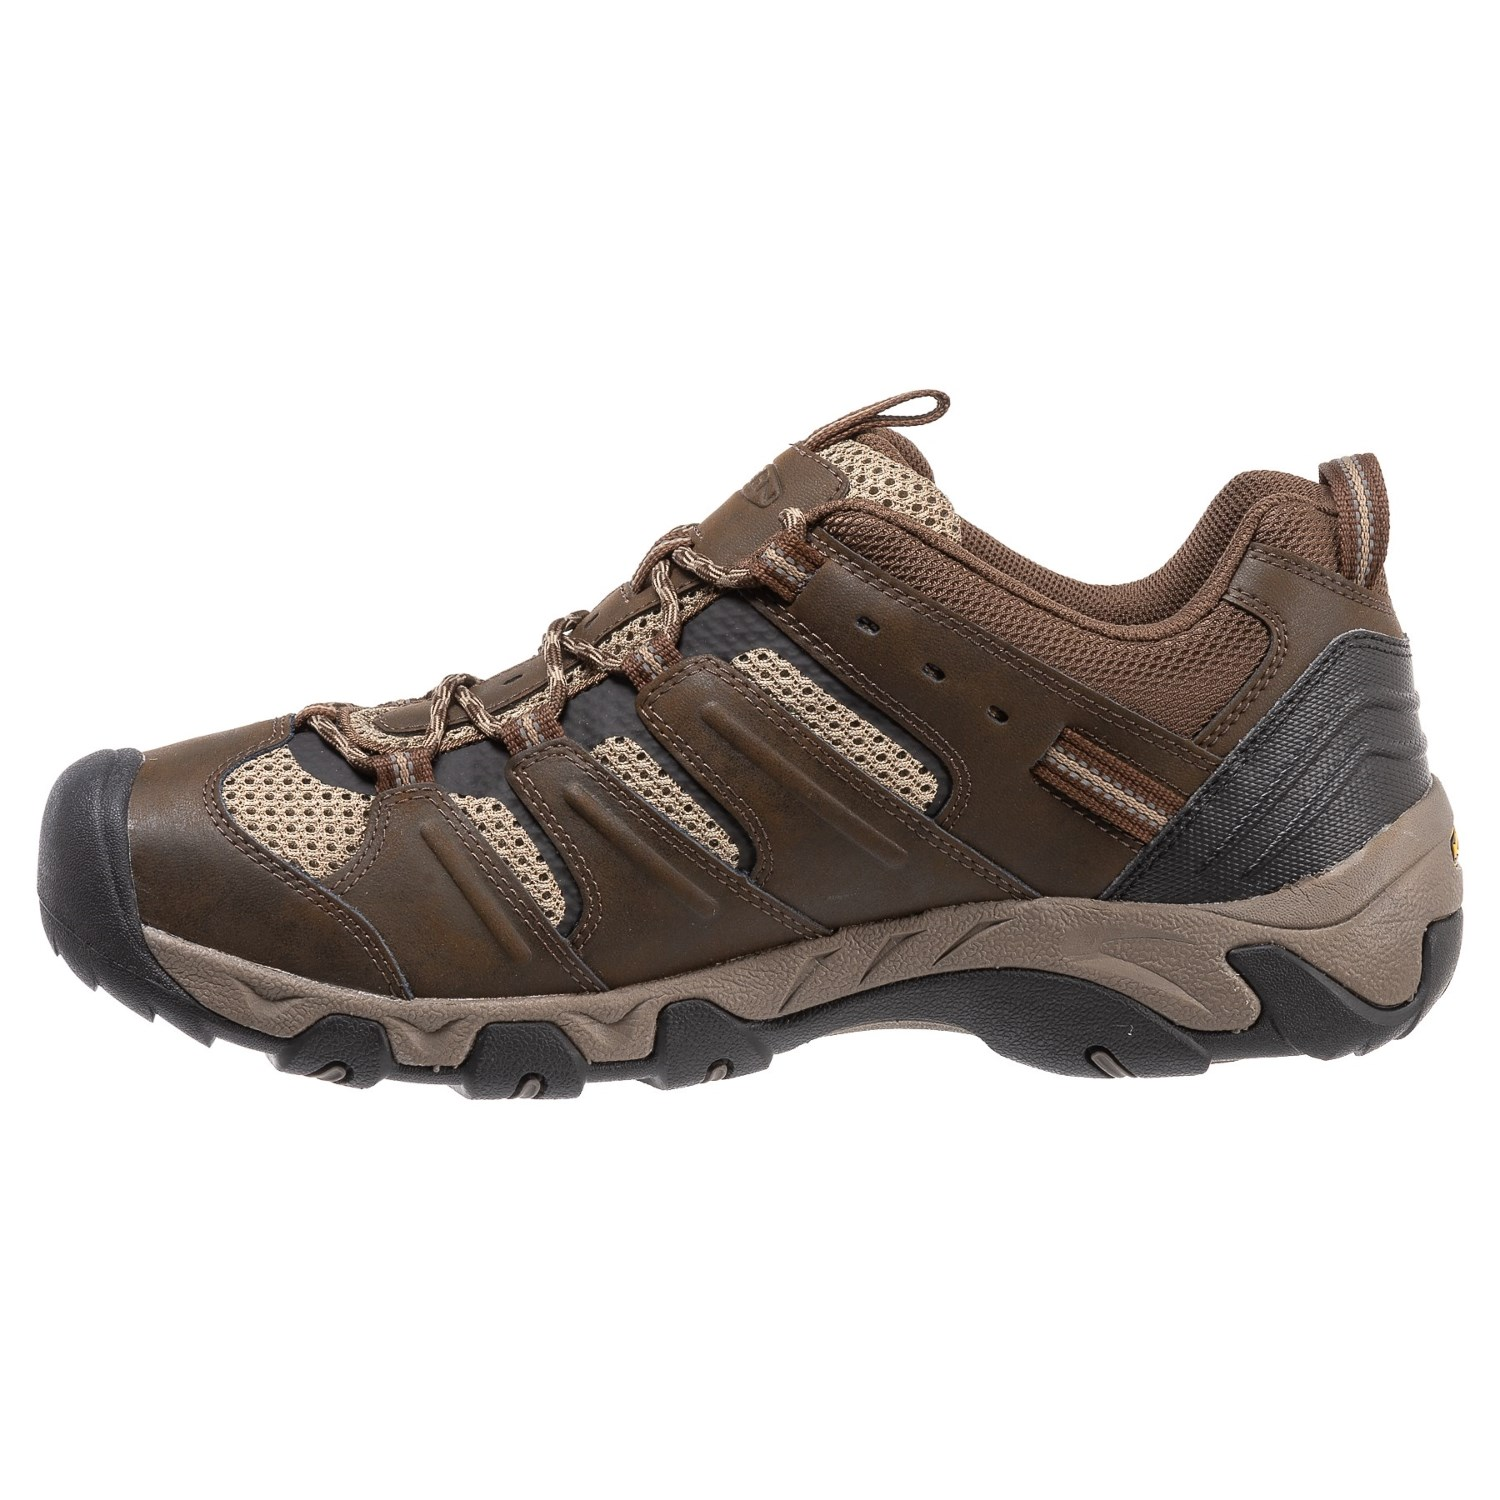 17d75a36ba49 Keen Koven Hiking Shoes (For Men) - Save 47%